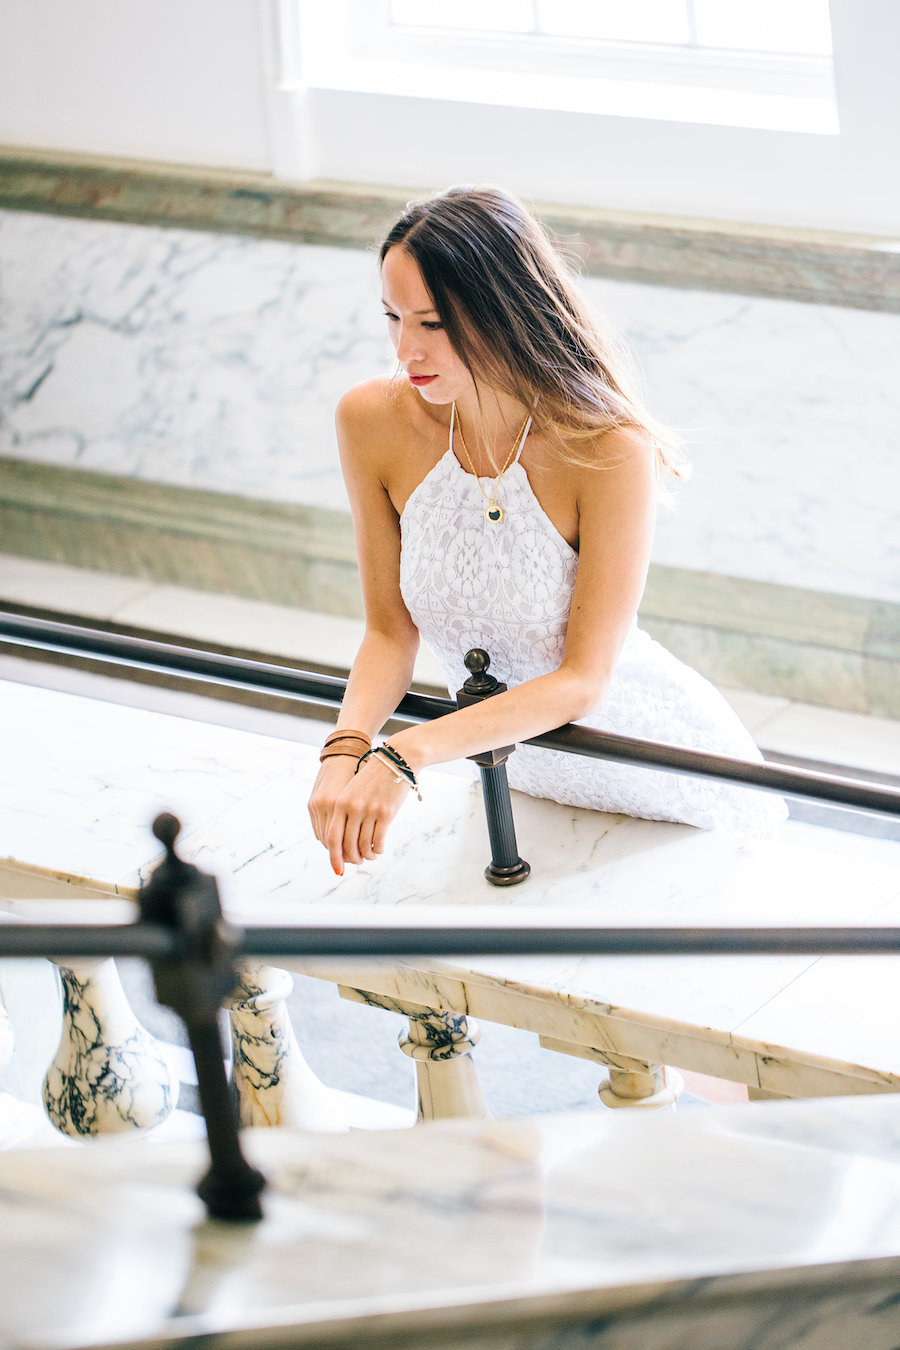 White dress photoshoot on marble staircase